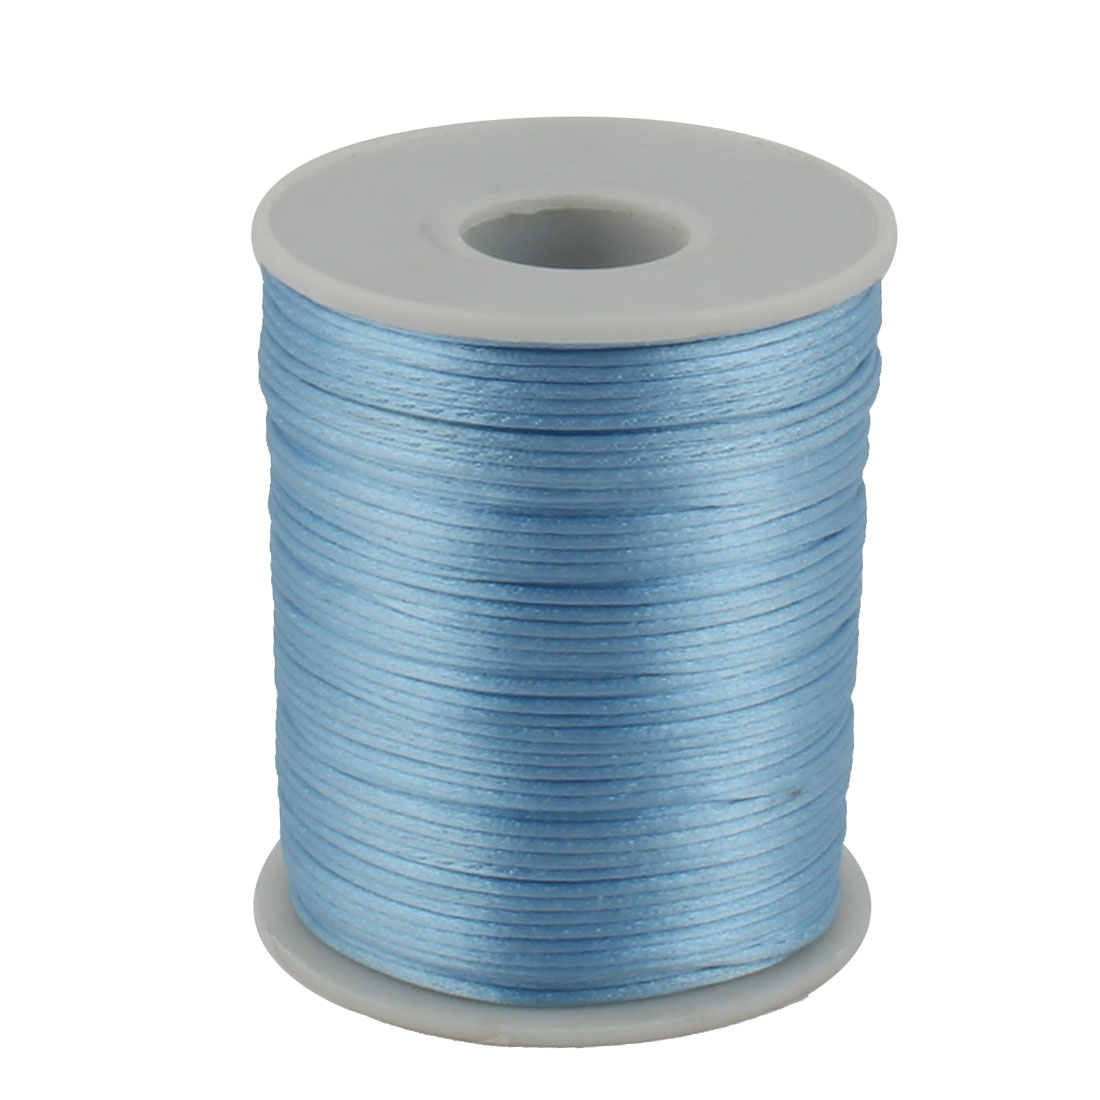 Nylon Handicraft DIY Braided Chinese Knot Cord String Rope Light Blue 109 Yards